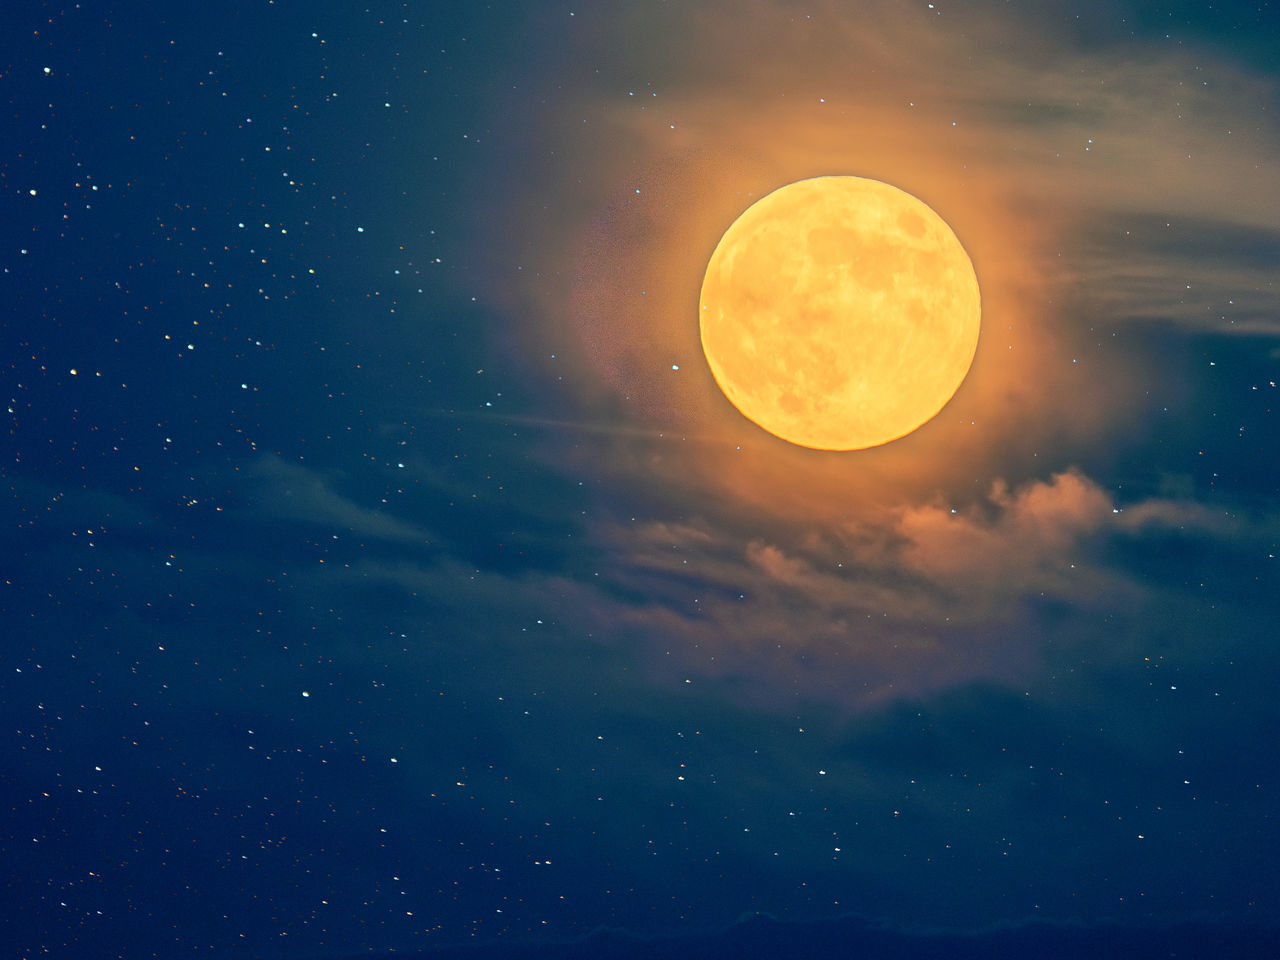 SCENIC VIEW OF FULL MOON IN SKY